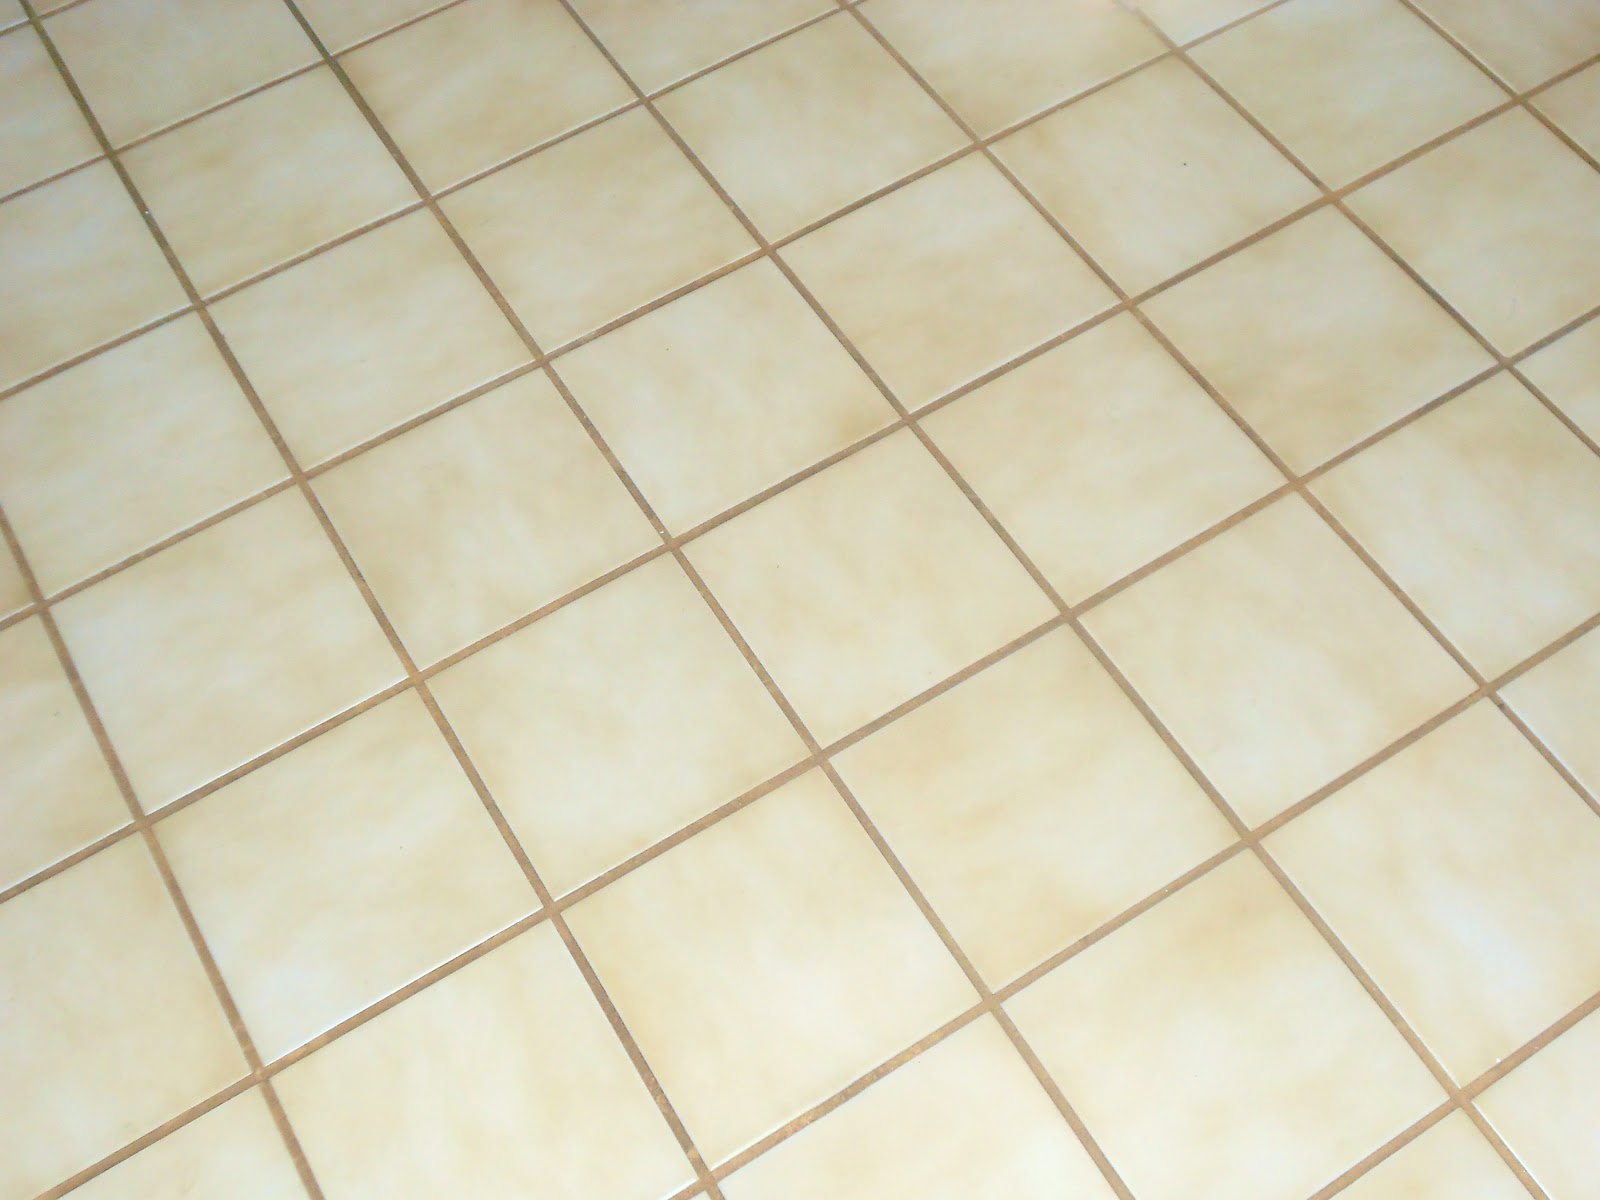 Foyer Tile Grout : Painting tile and grout